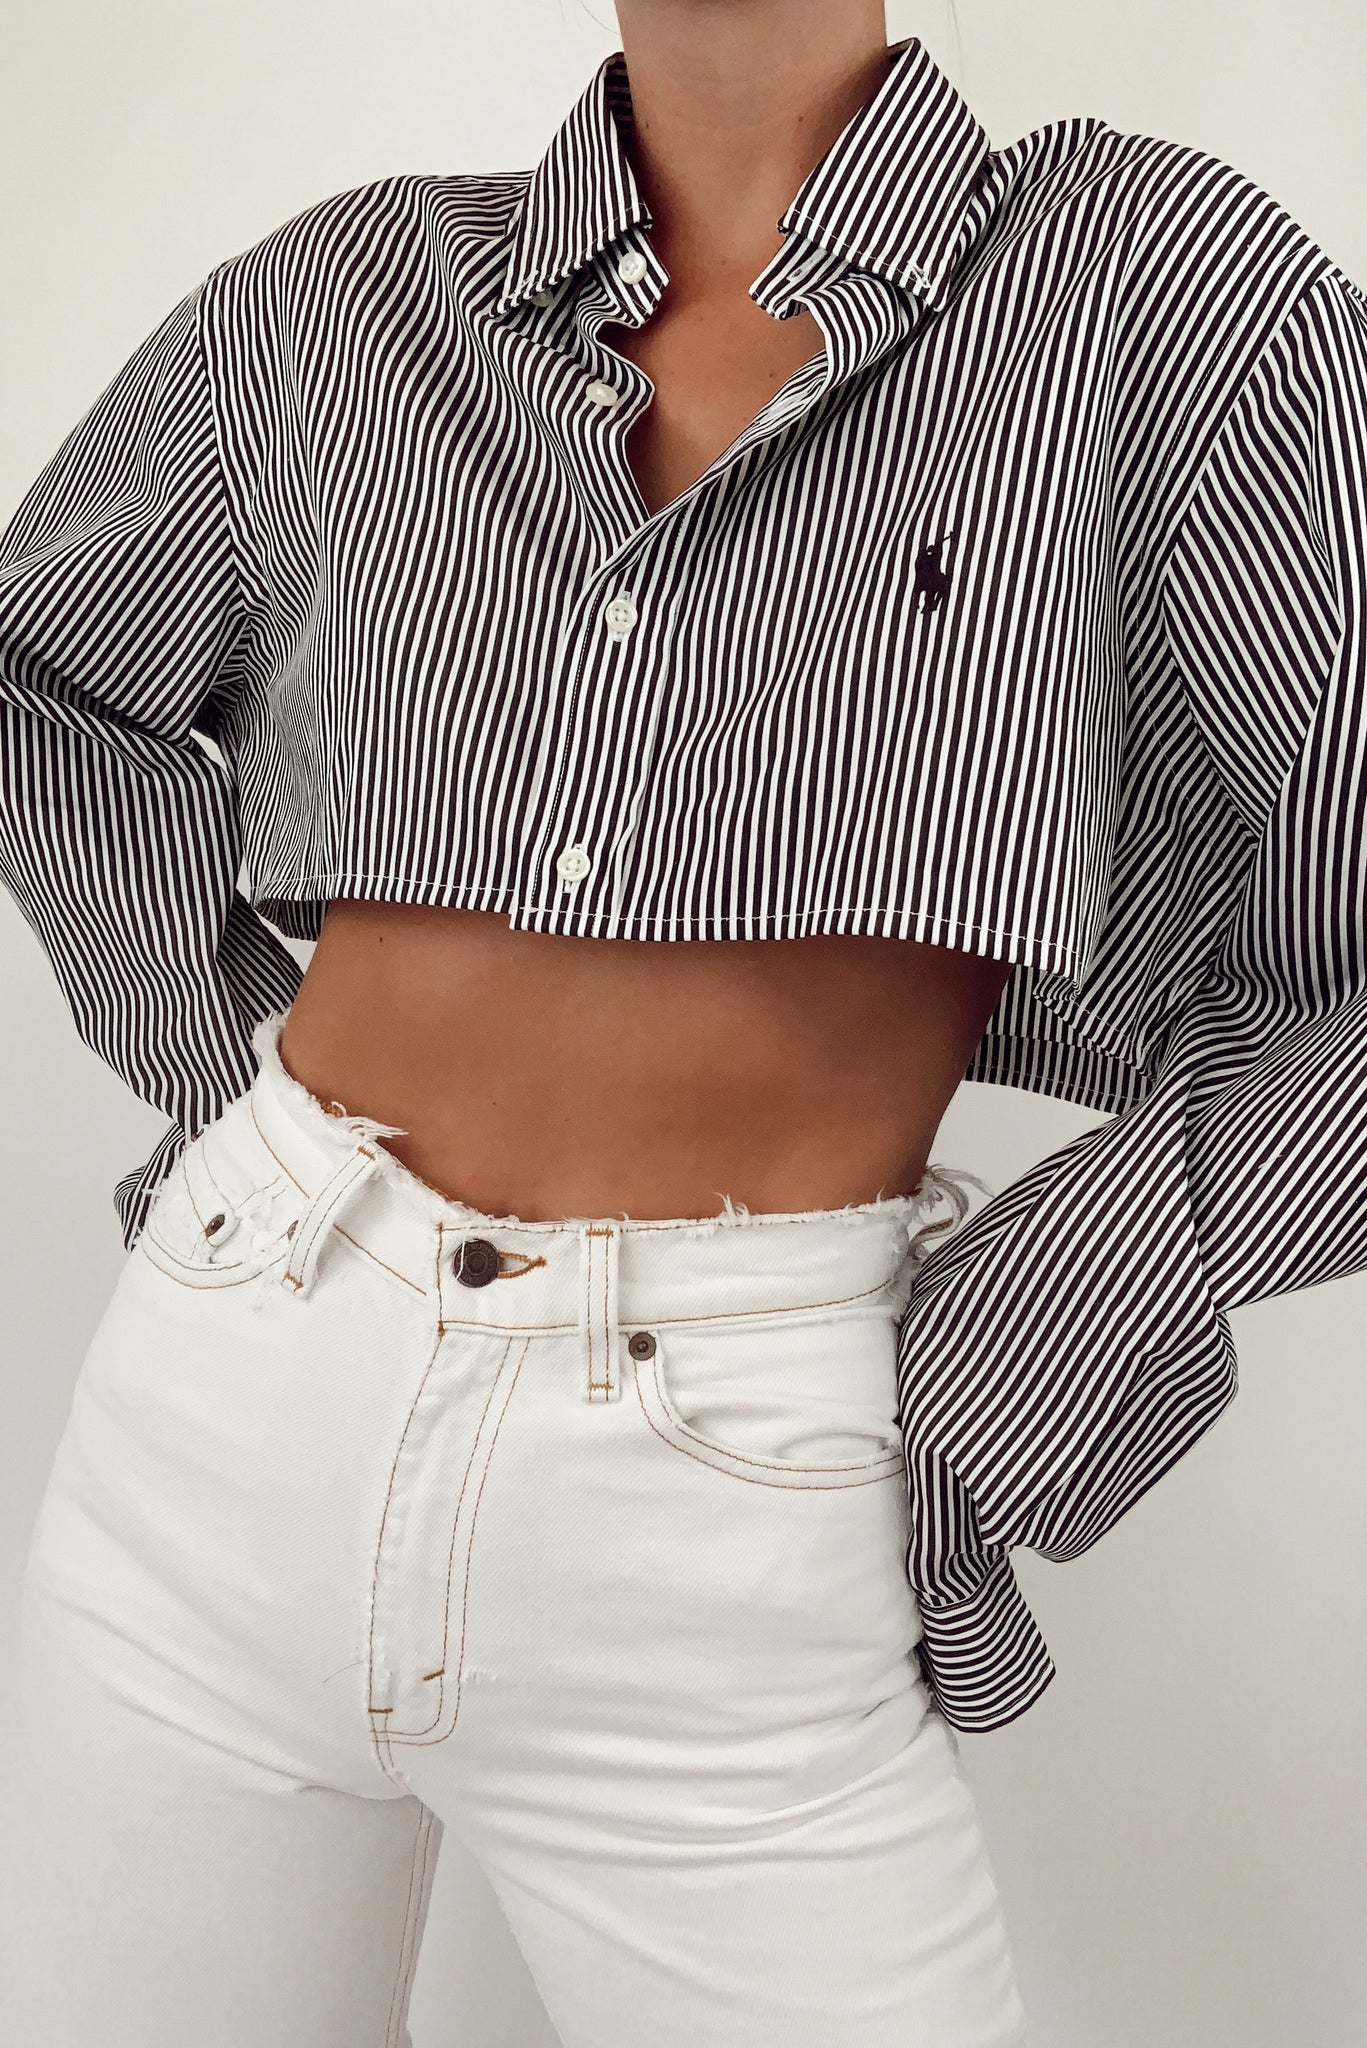 Reworked Cropped Ralph Lauren Button Down (S-L)